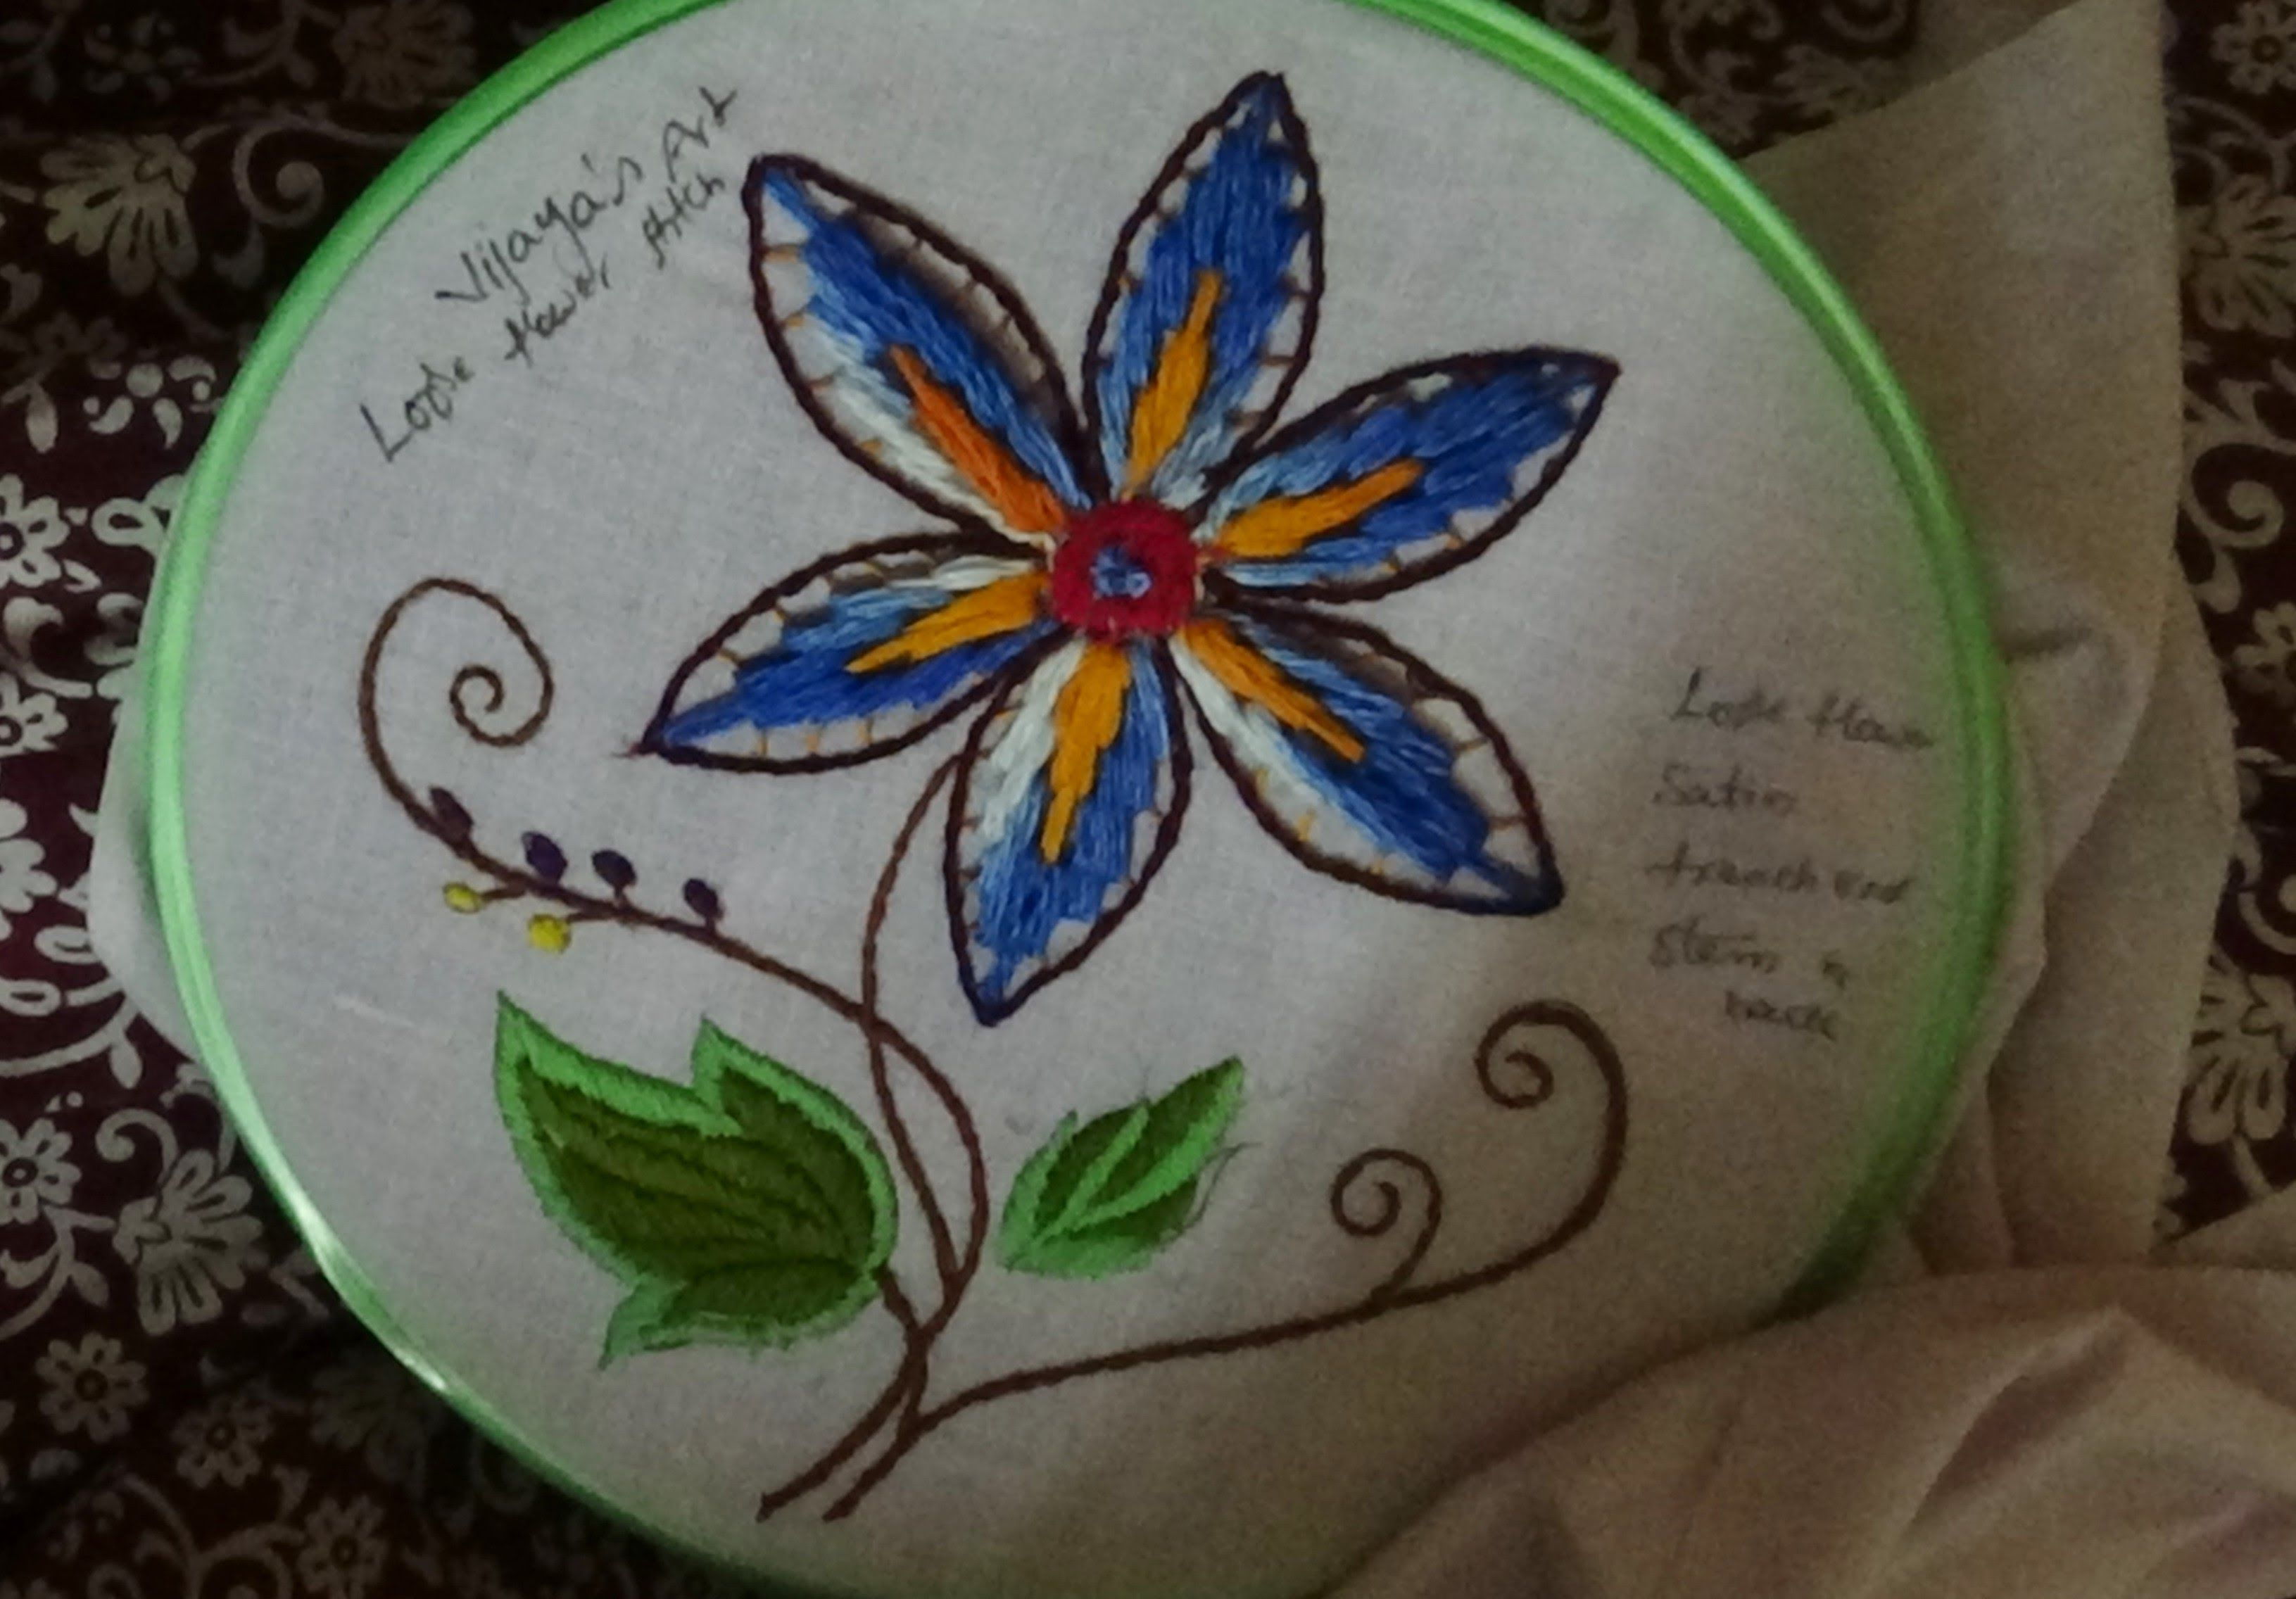 Hand Embroidery Designs # 158 - Loose Flower Design